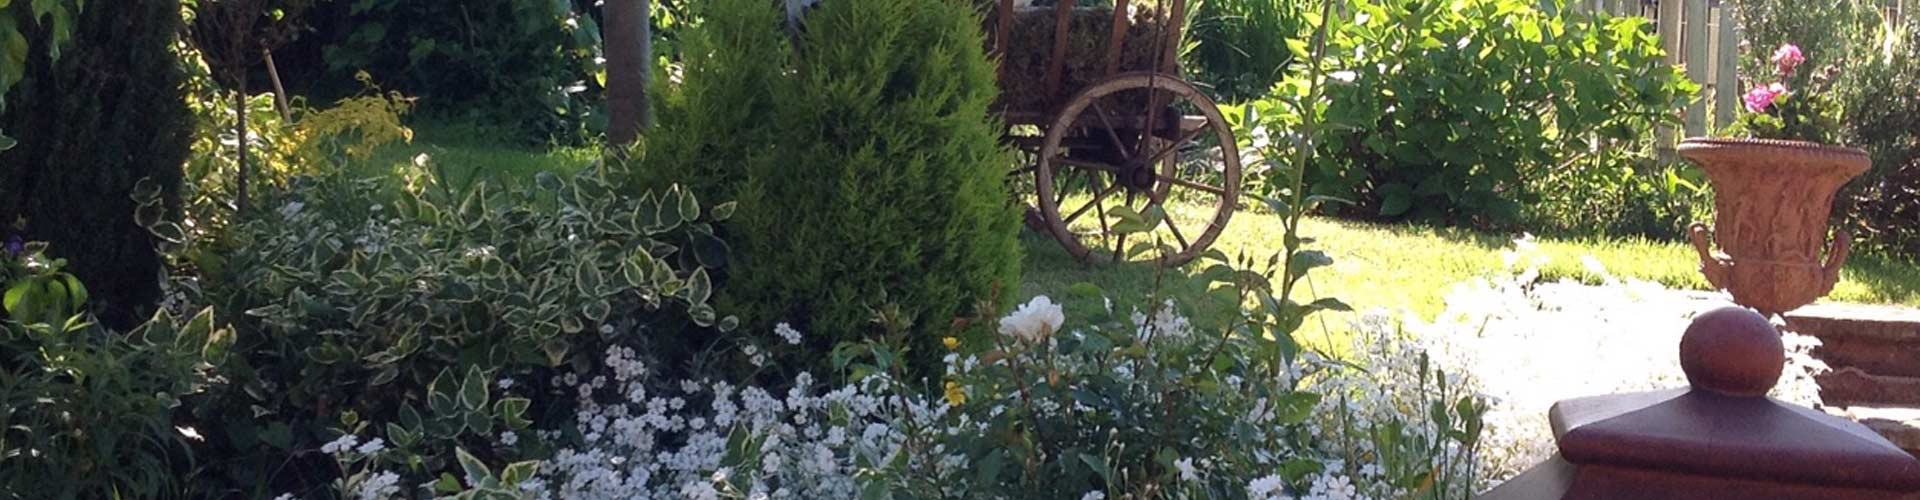 Garden by The Barn and The Stable